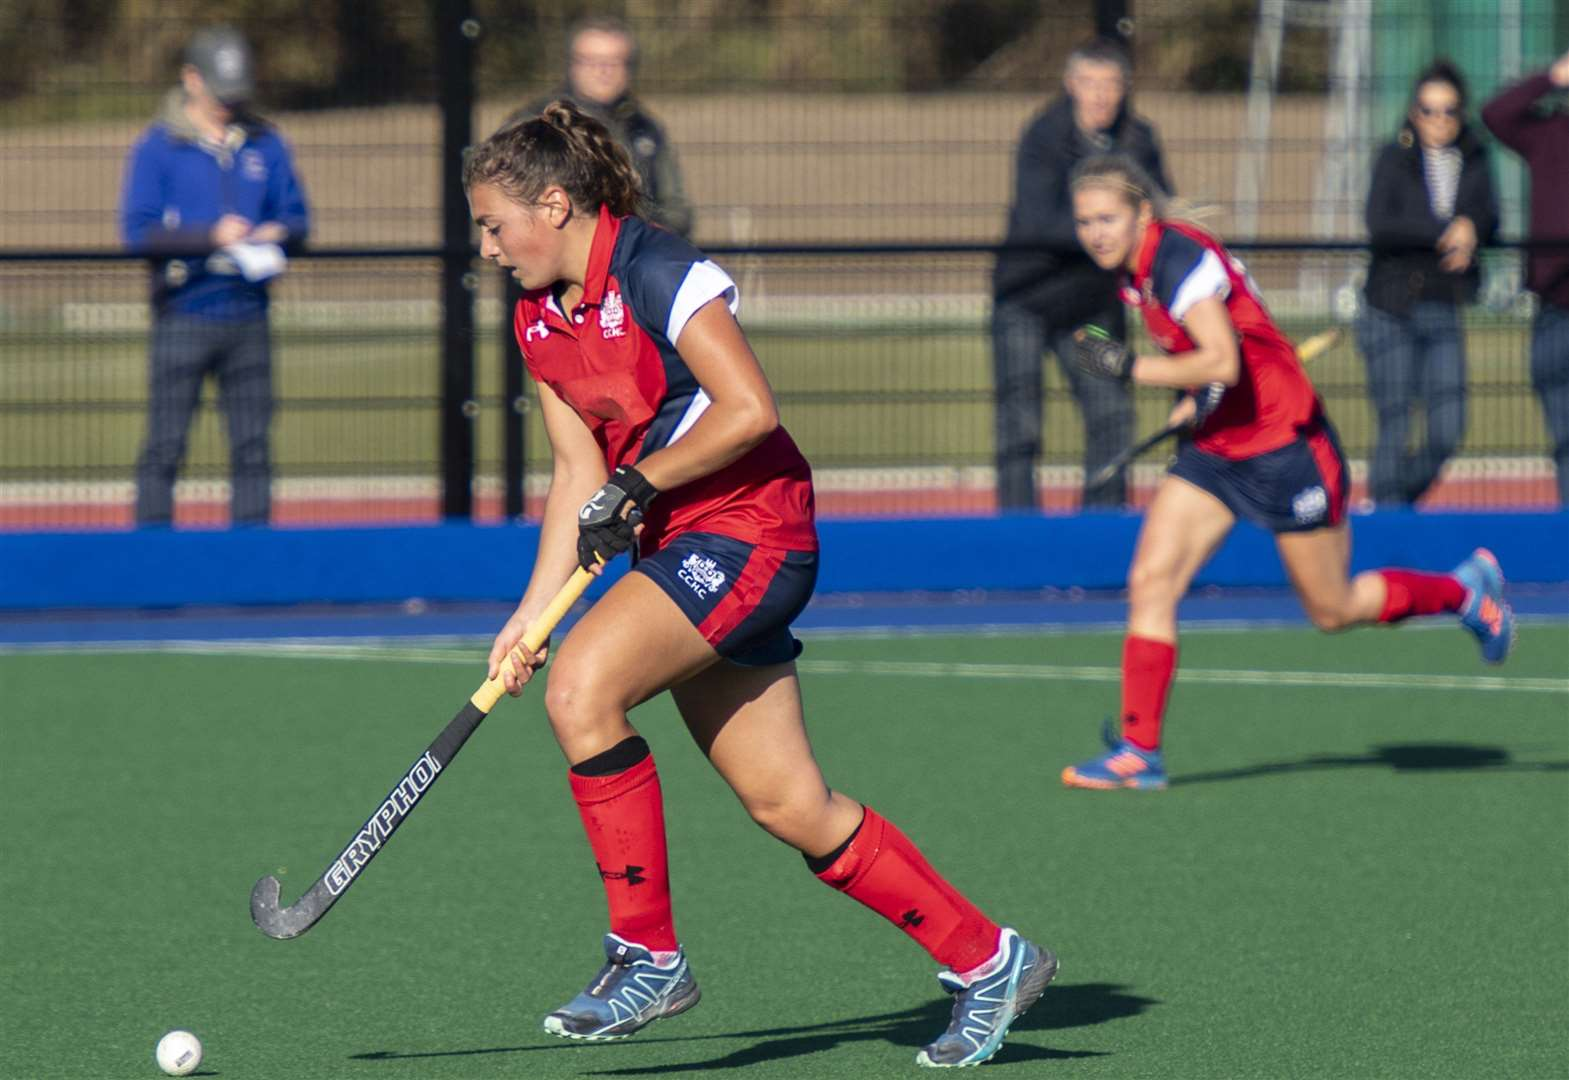 Meg Crowson double helps Cambridge City secure third place in Investec Women's Hockey League, Conference East